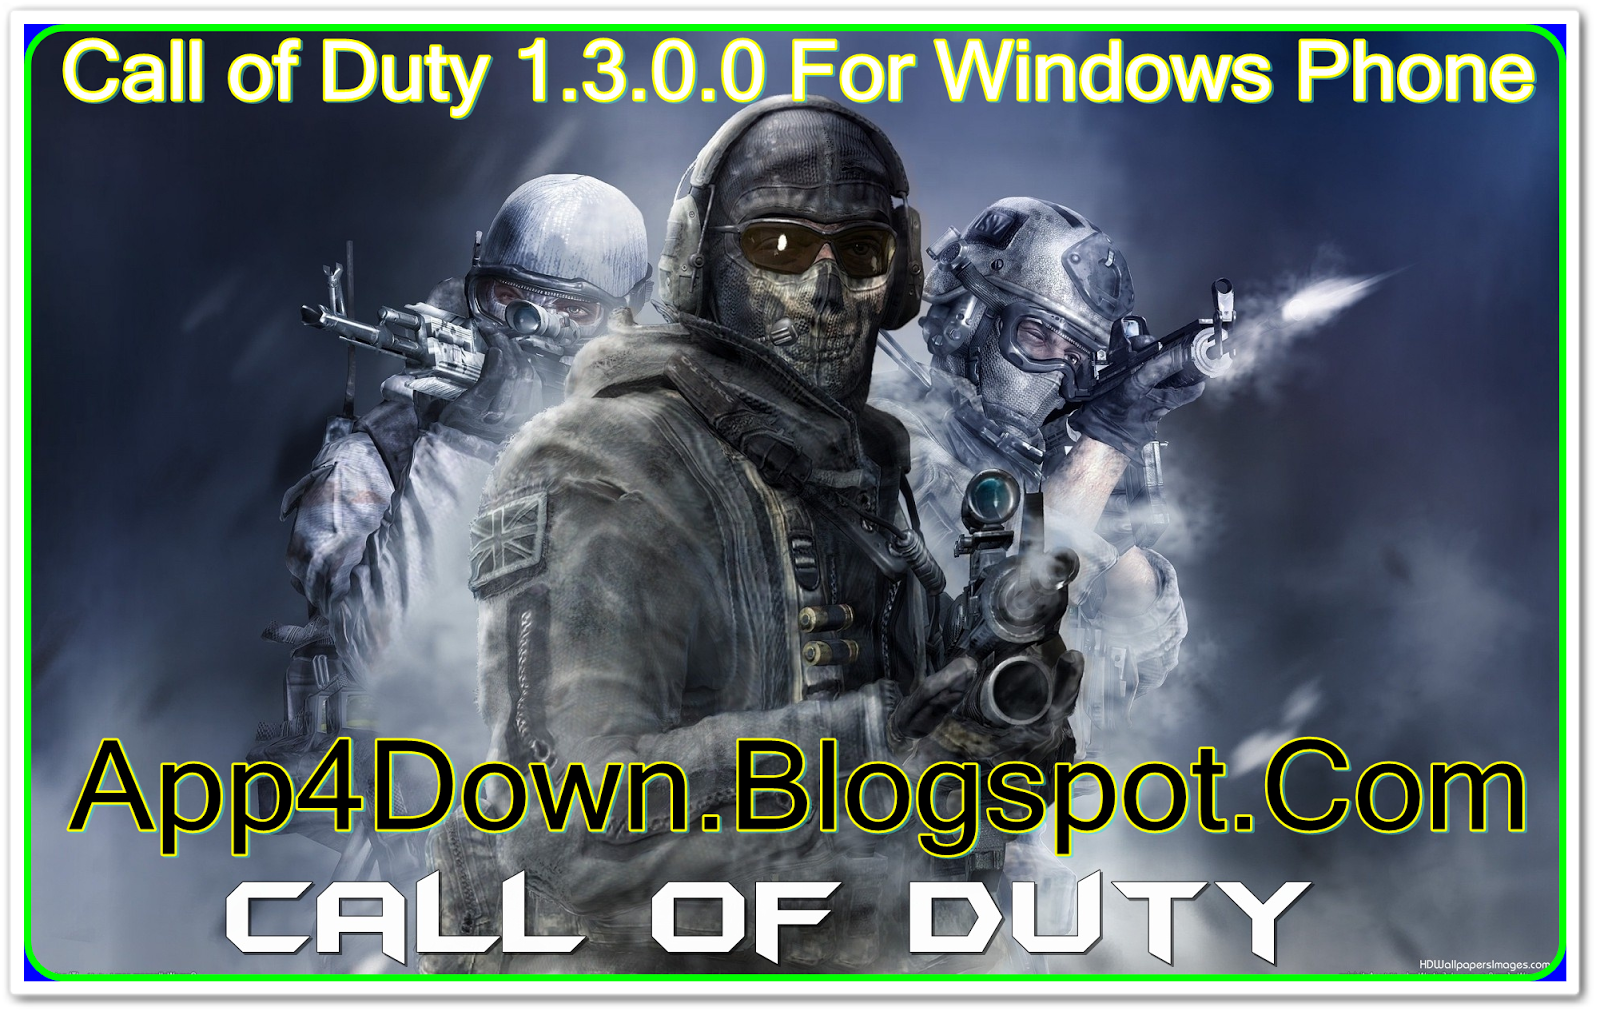 Download Call of Duty 1.3.0.0 For Windows Phone (NEW)